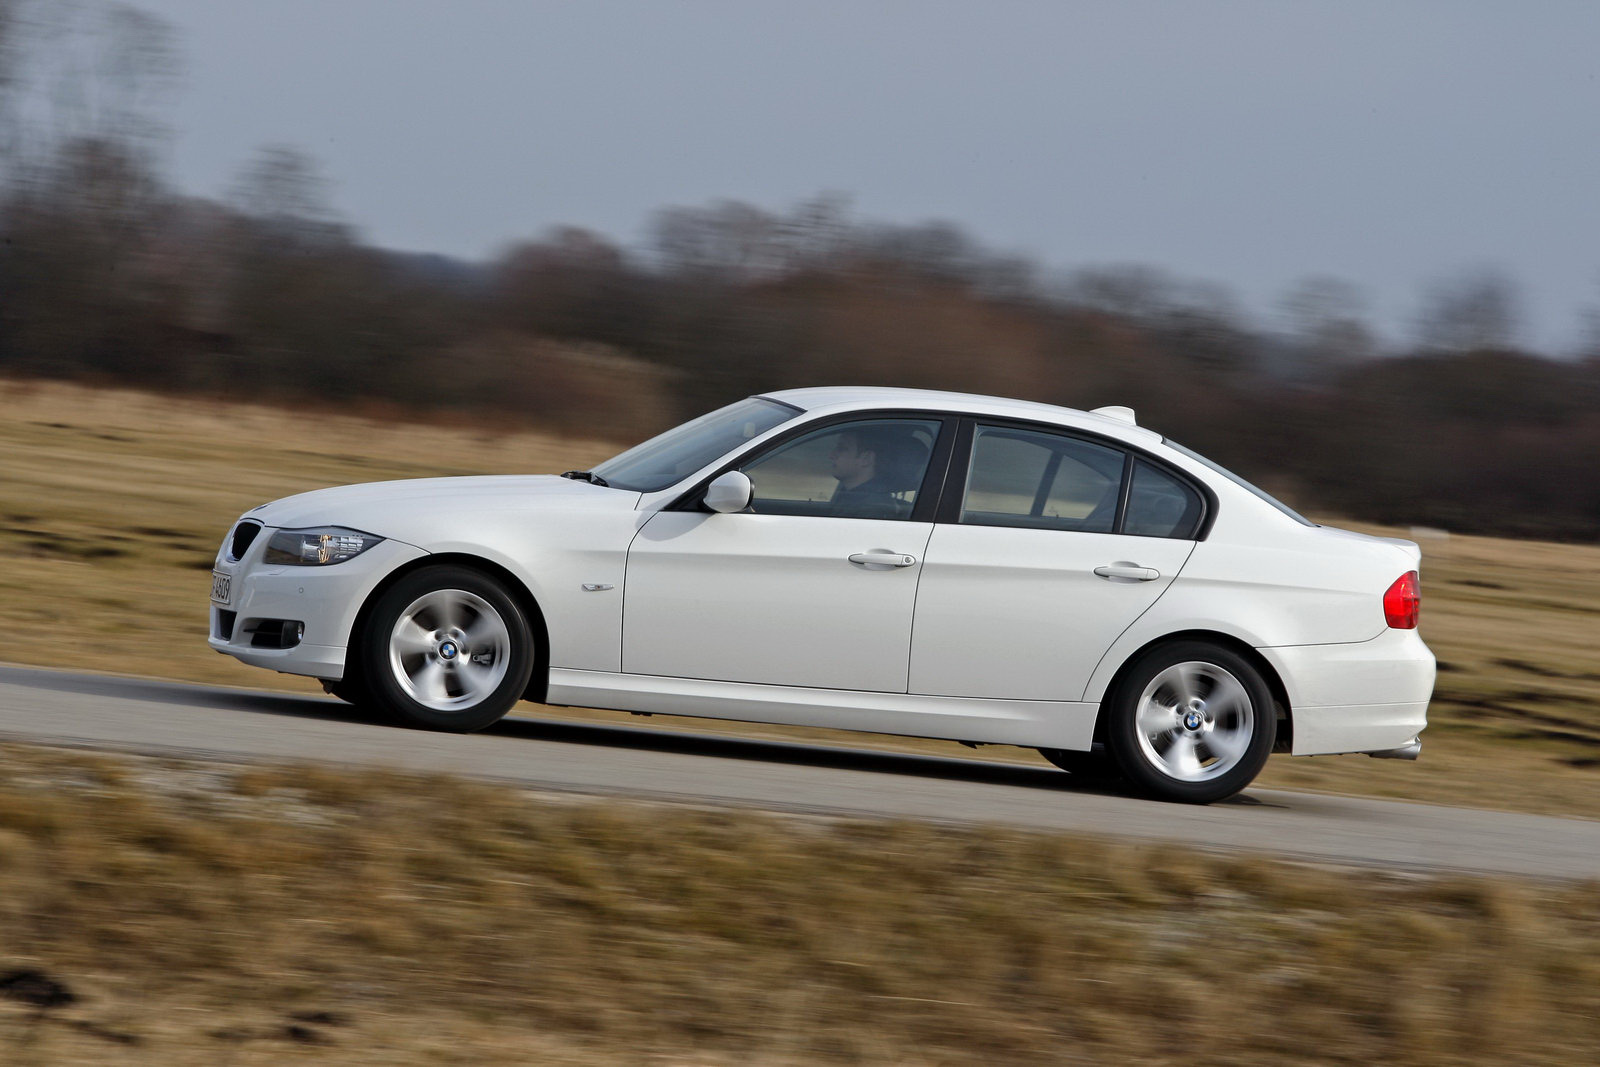 Bmw 320d Efficientdynamics Completes 1 013 Ml Journey From Uk To Munich And Back Germancarforum